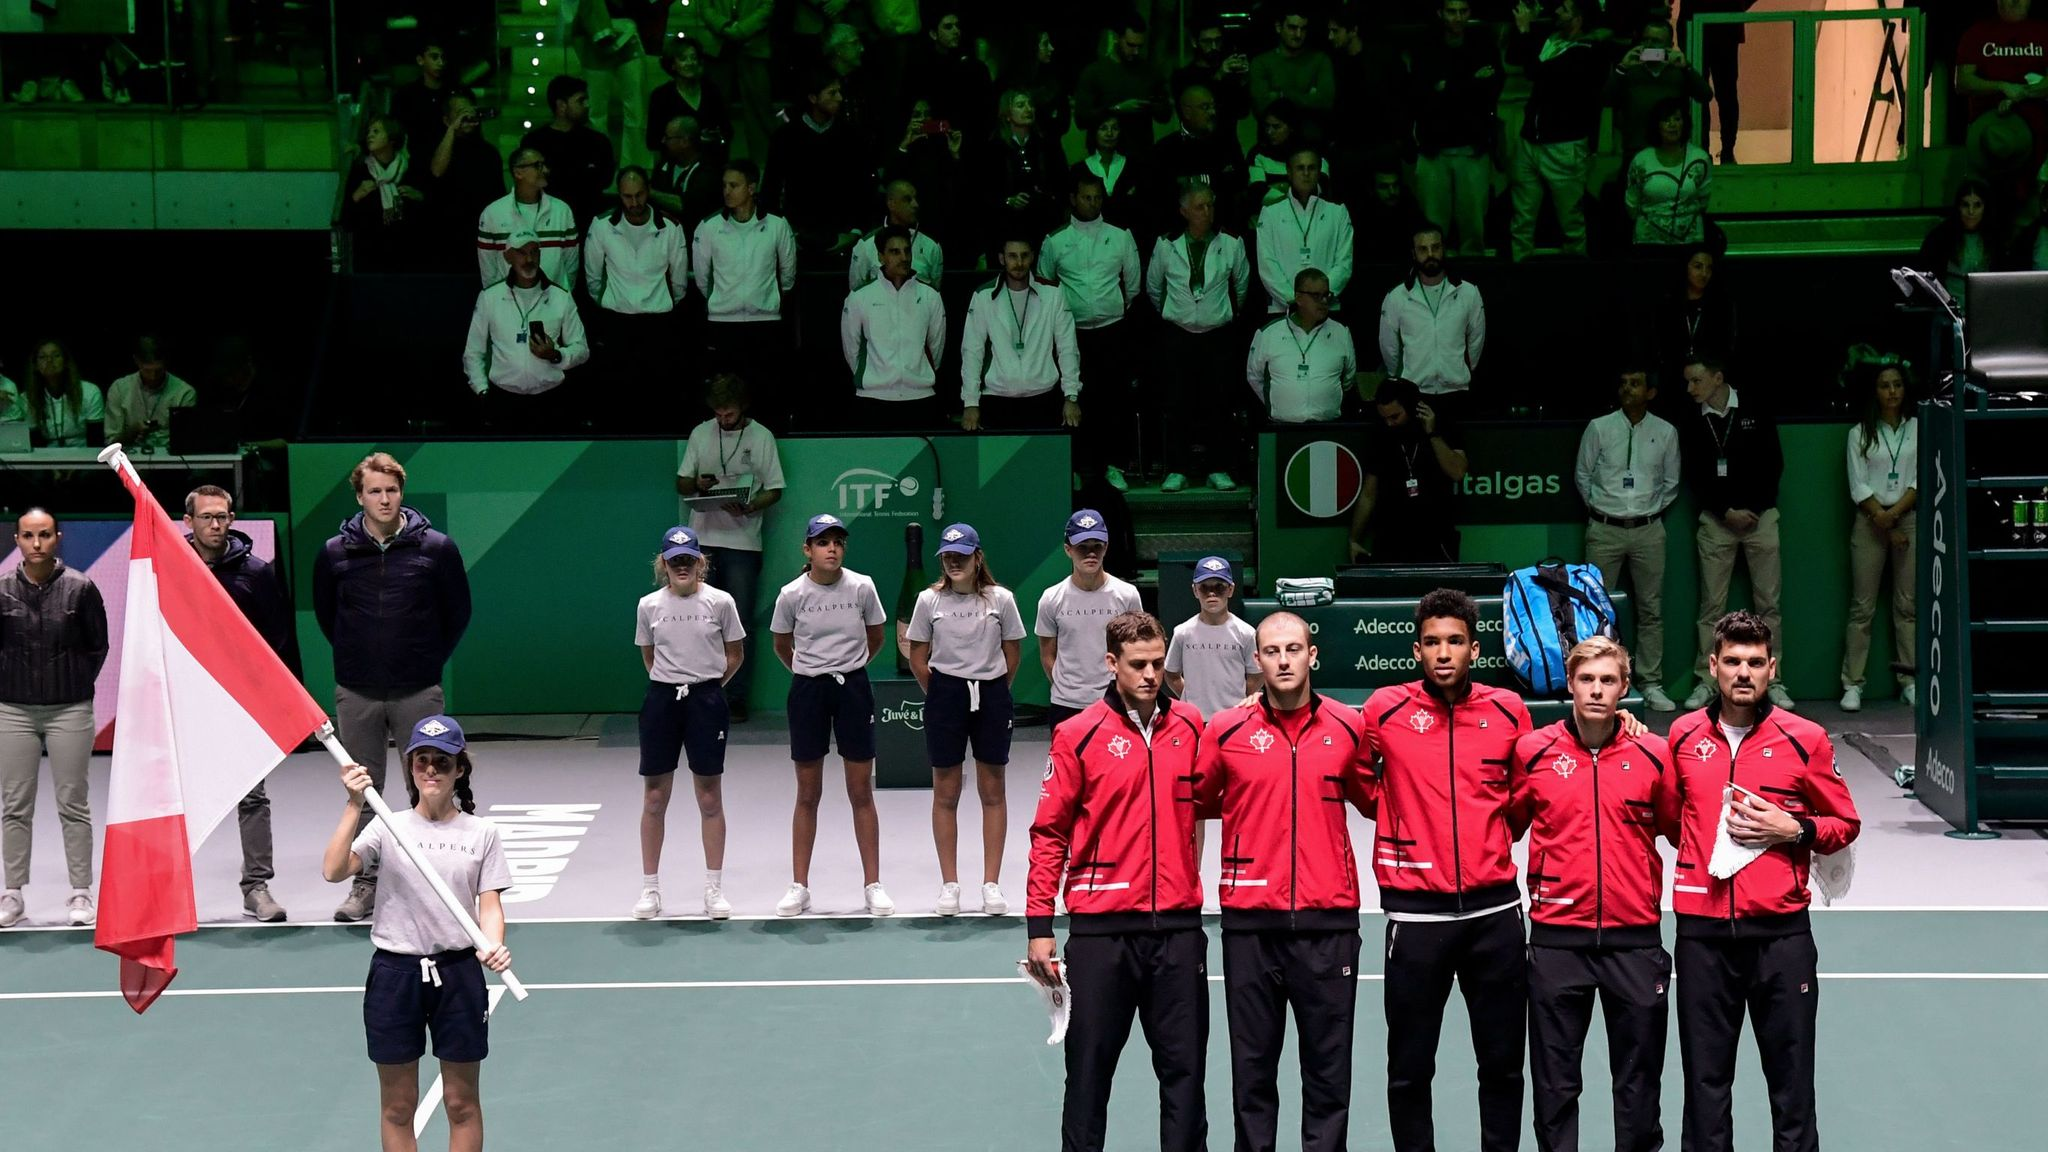 Spain ease into quarter-finals of Davis Cup in Madrid